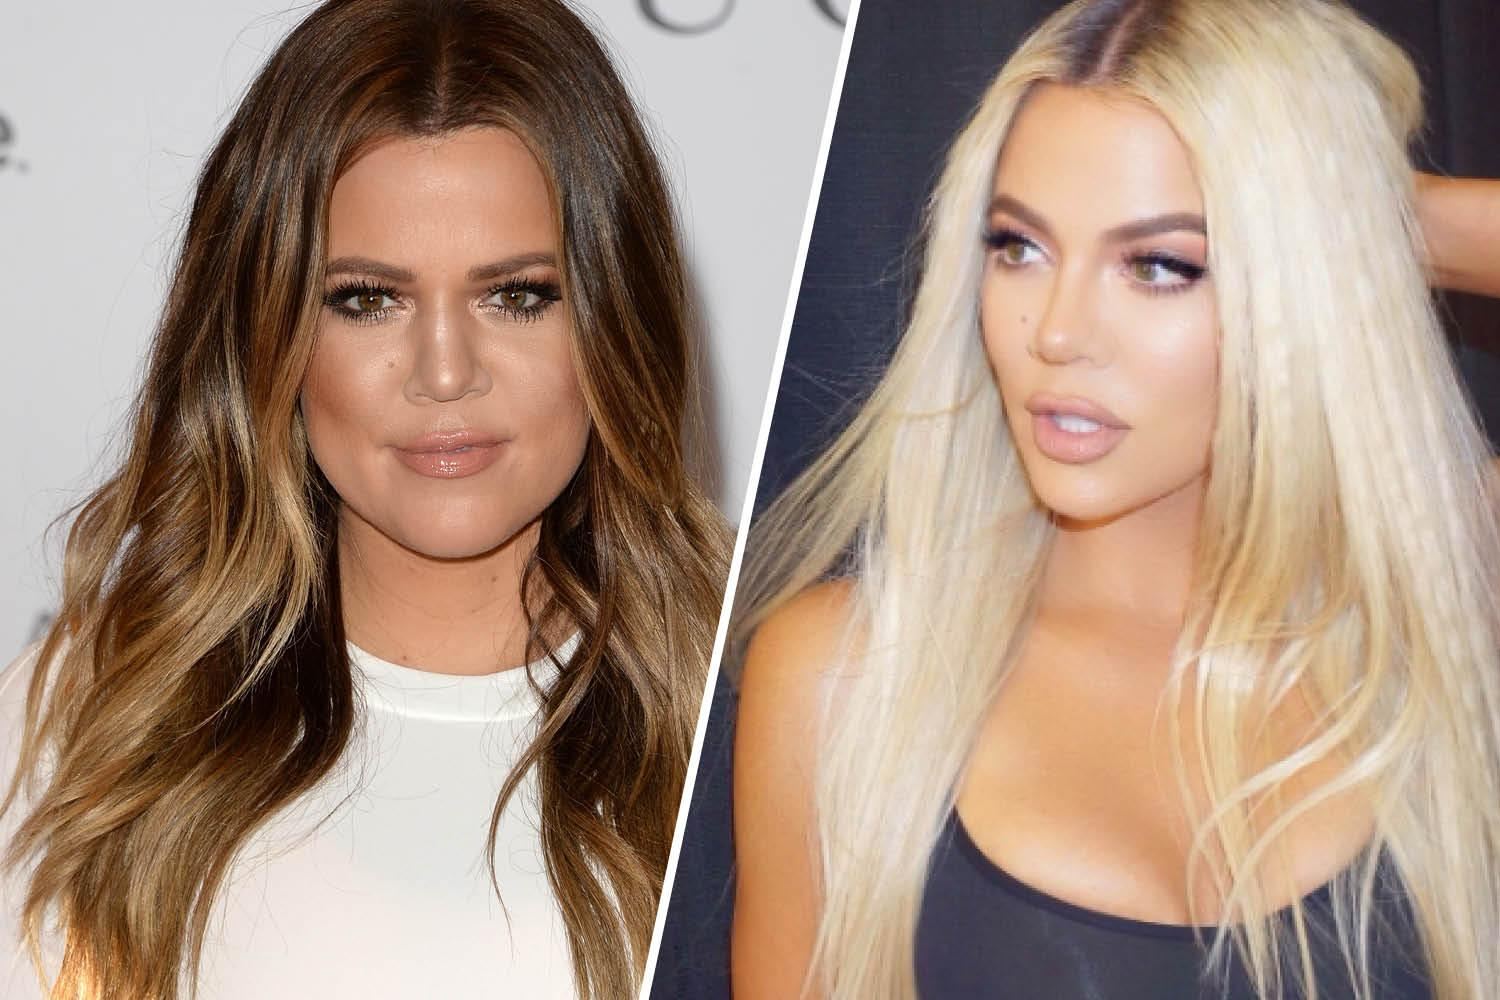 KUWK: Khloe Kardashian Accused Of Altering Her Pics Too Much - 'That Is A Whole New Face!'